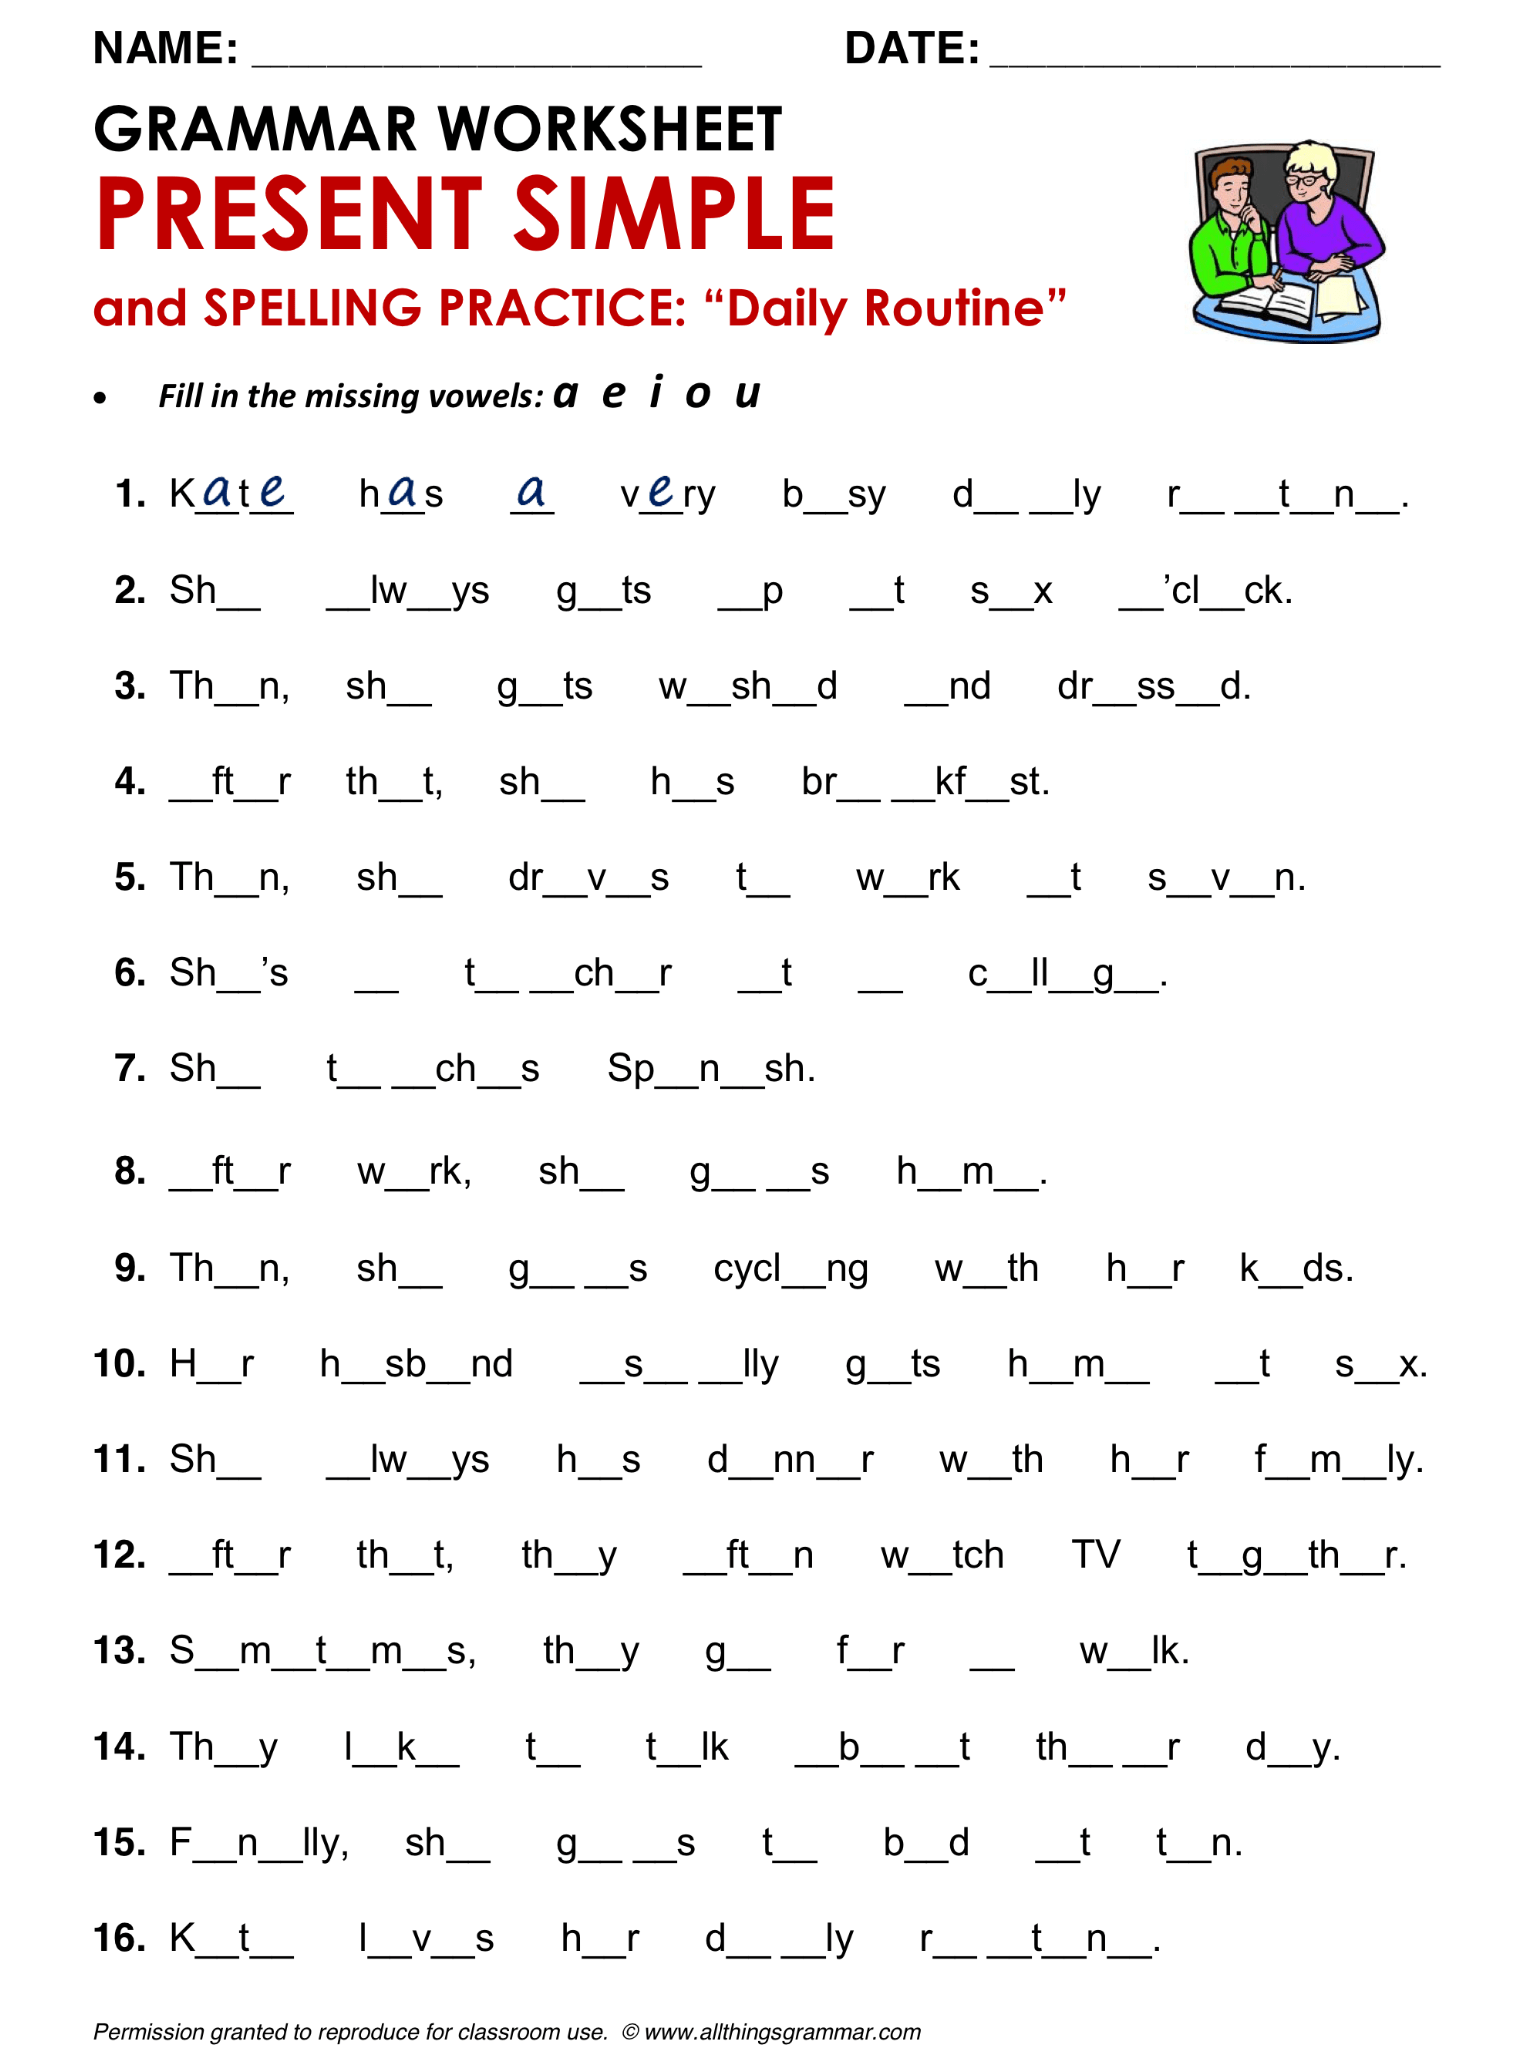 English Grammar Present Simple And Spelling Practice